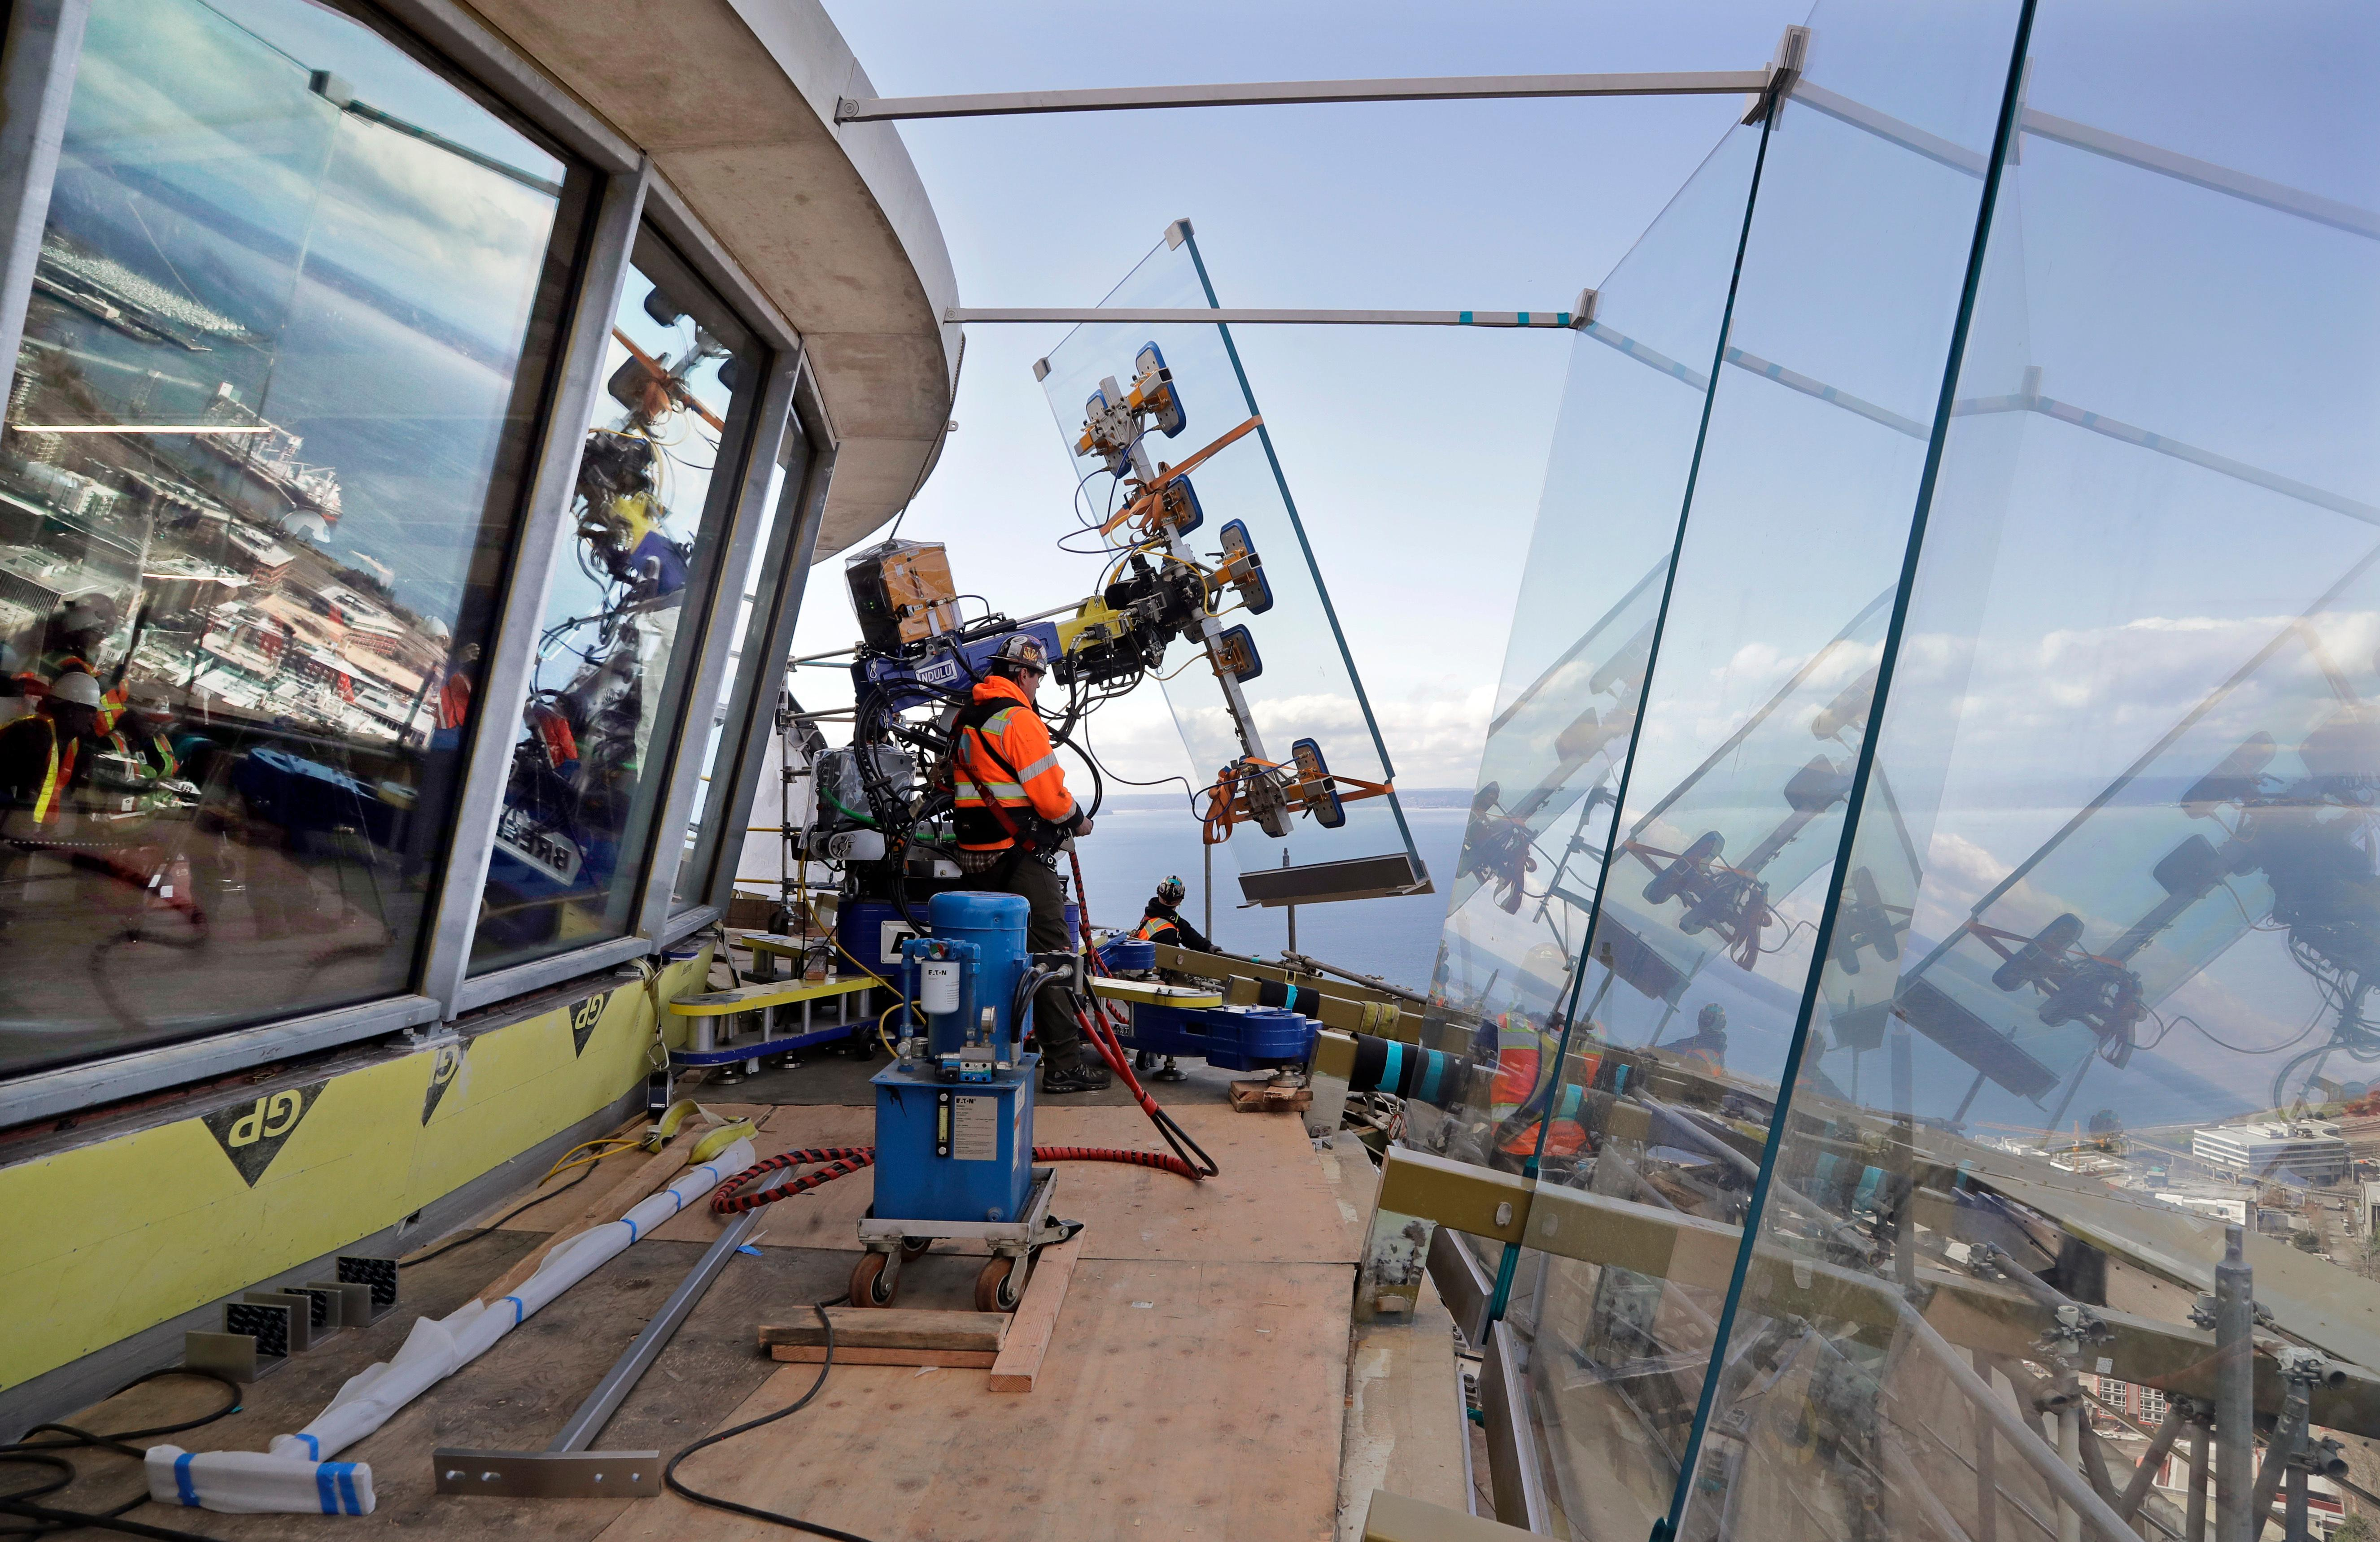 FILE - In this March 20, 2018, file photo, a one-ton glass panel is moved into position on the Space Needle's observation deck in Seattle.  The 56 year-old Space Needle is set to unveil a $100 million renovation next month against the backdrop of a booming tourism industry. Seattle's Wright family, which built and owns the Space Needle, is installing floor-to-ceiling glass in the observation deck and remodeling the restaurant in the first phase of the renovation.  (AP Photo/Elaine Thompson)